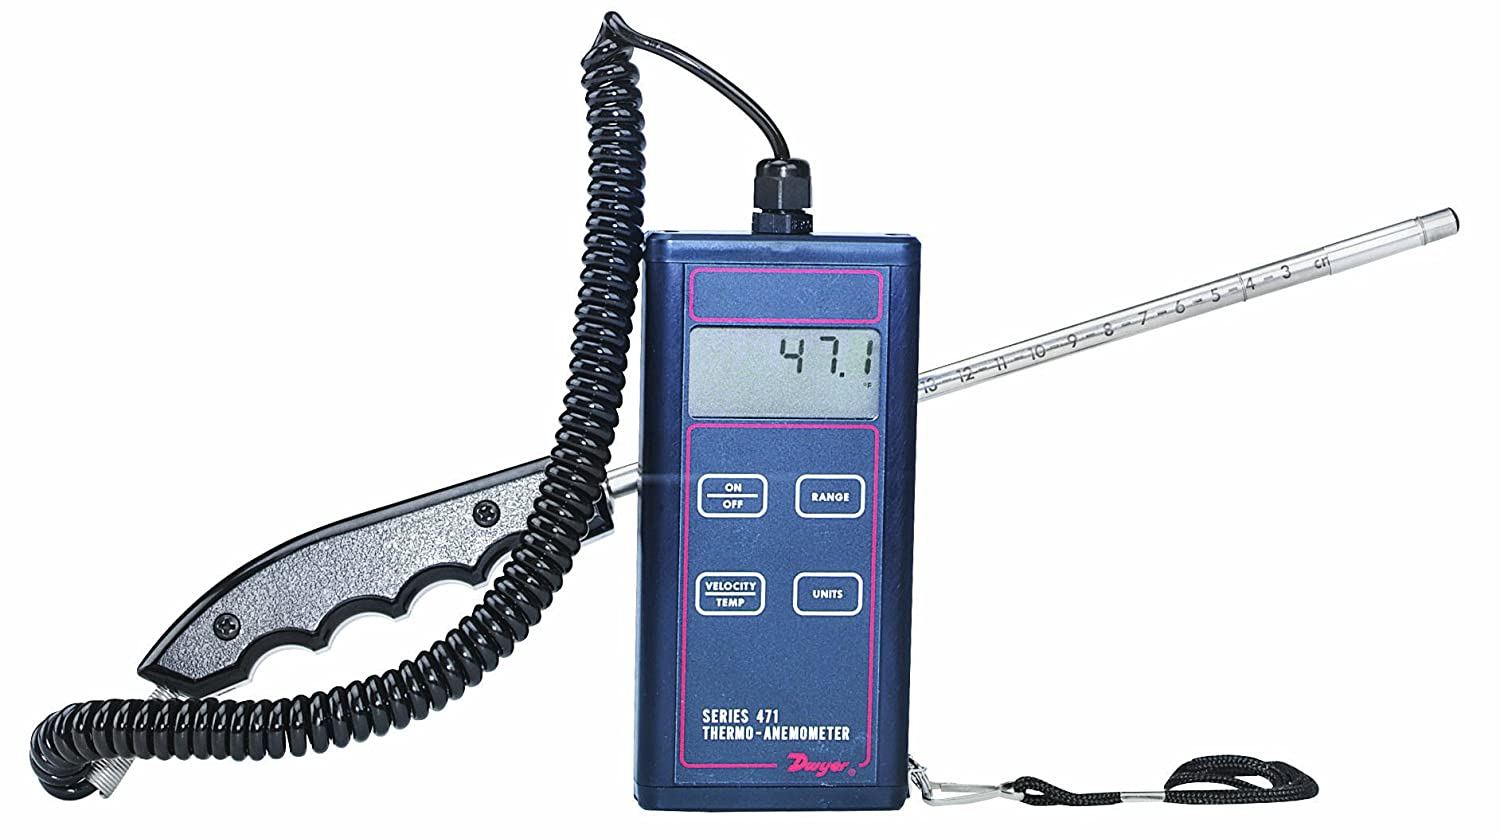 Dwyer 471B Digital Thermo-Anemometer with Hot-Wire Probe, 0 to 30 m/s Velocity, -40 to +100° C Temperature